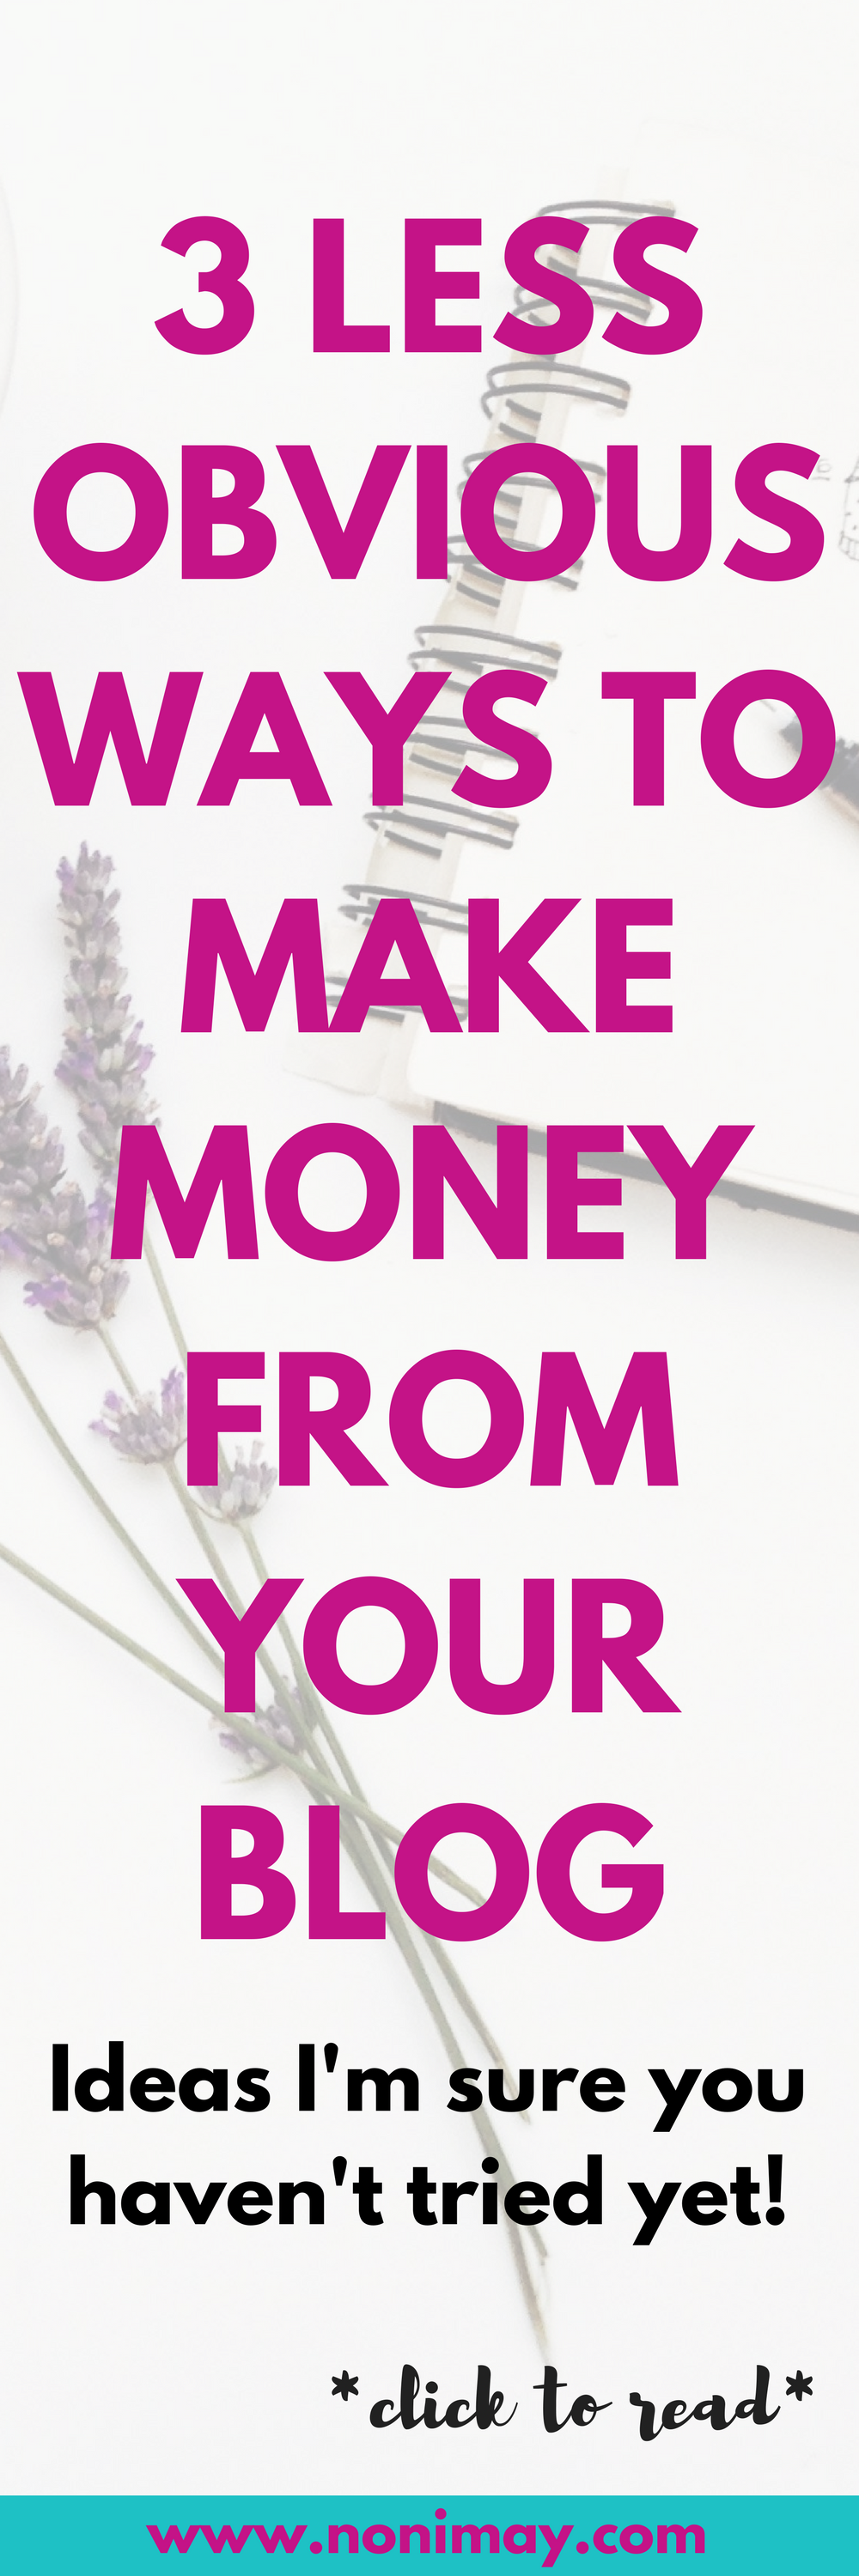 Three less obvious ways to make money from your blog